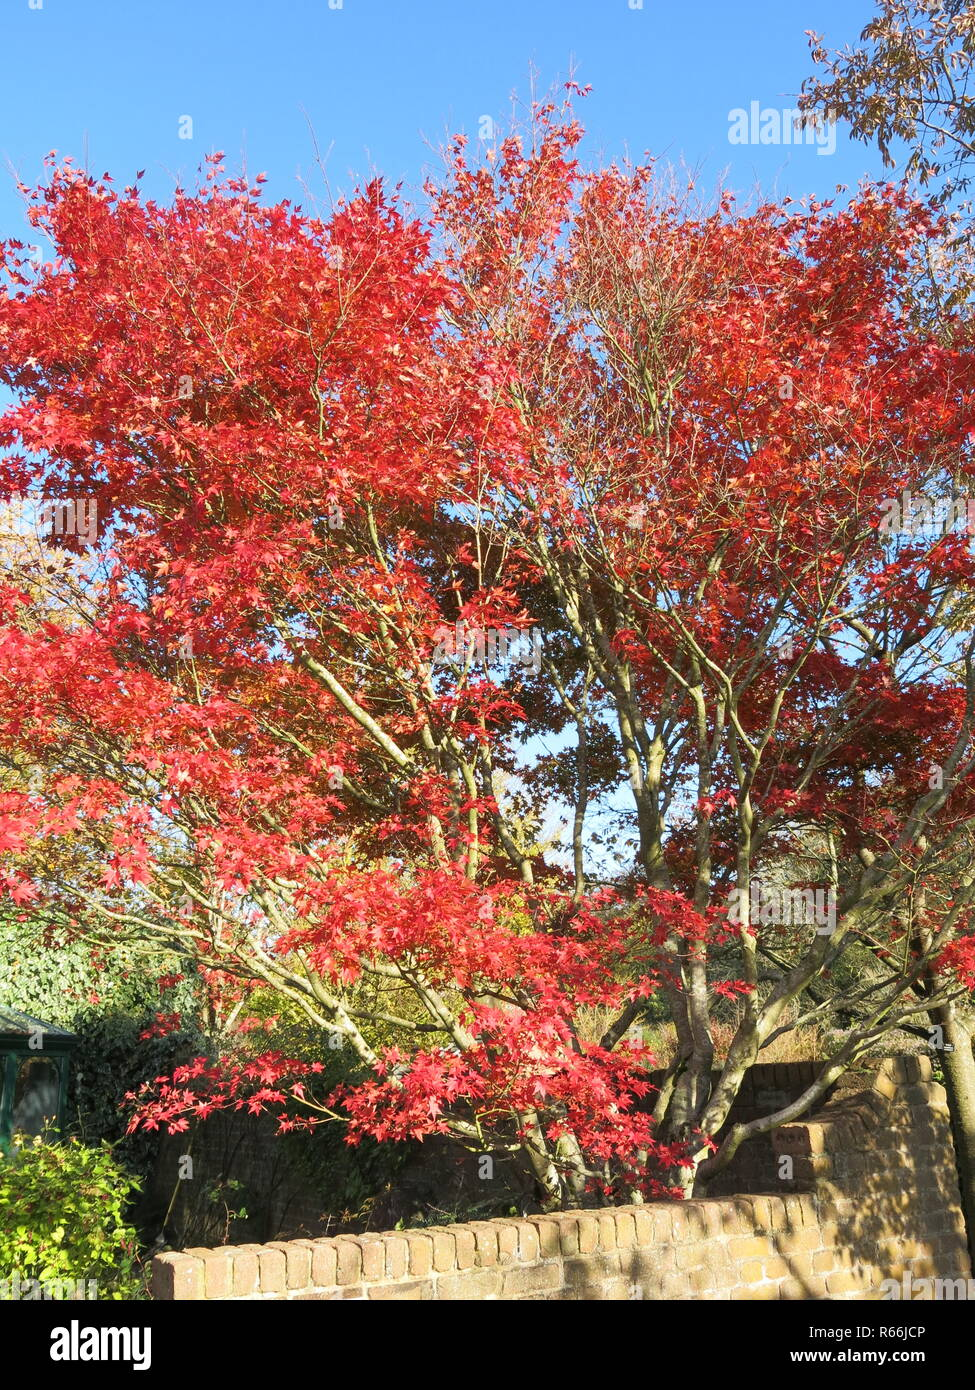 A glorious red acer shining in the autumn sunshine in a bright blue sky, in an English garden, November 2018 - Stock Image